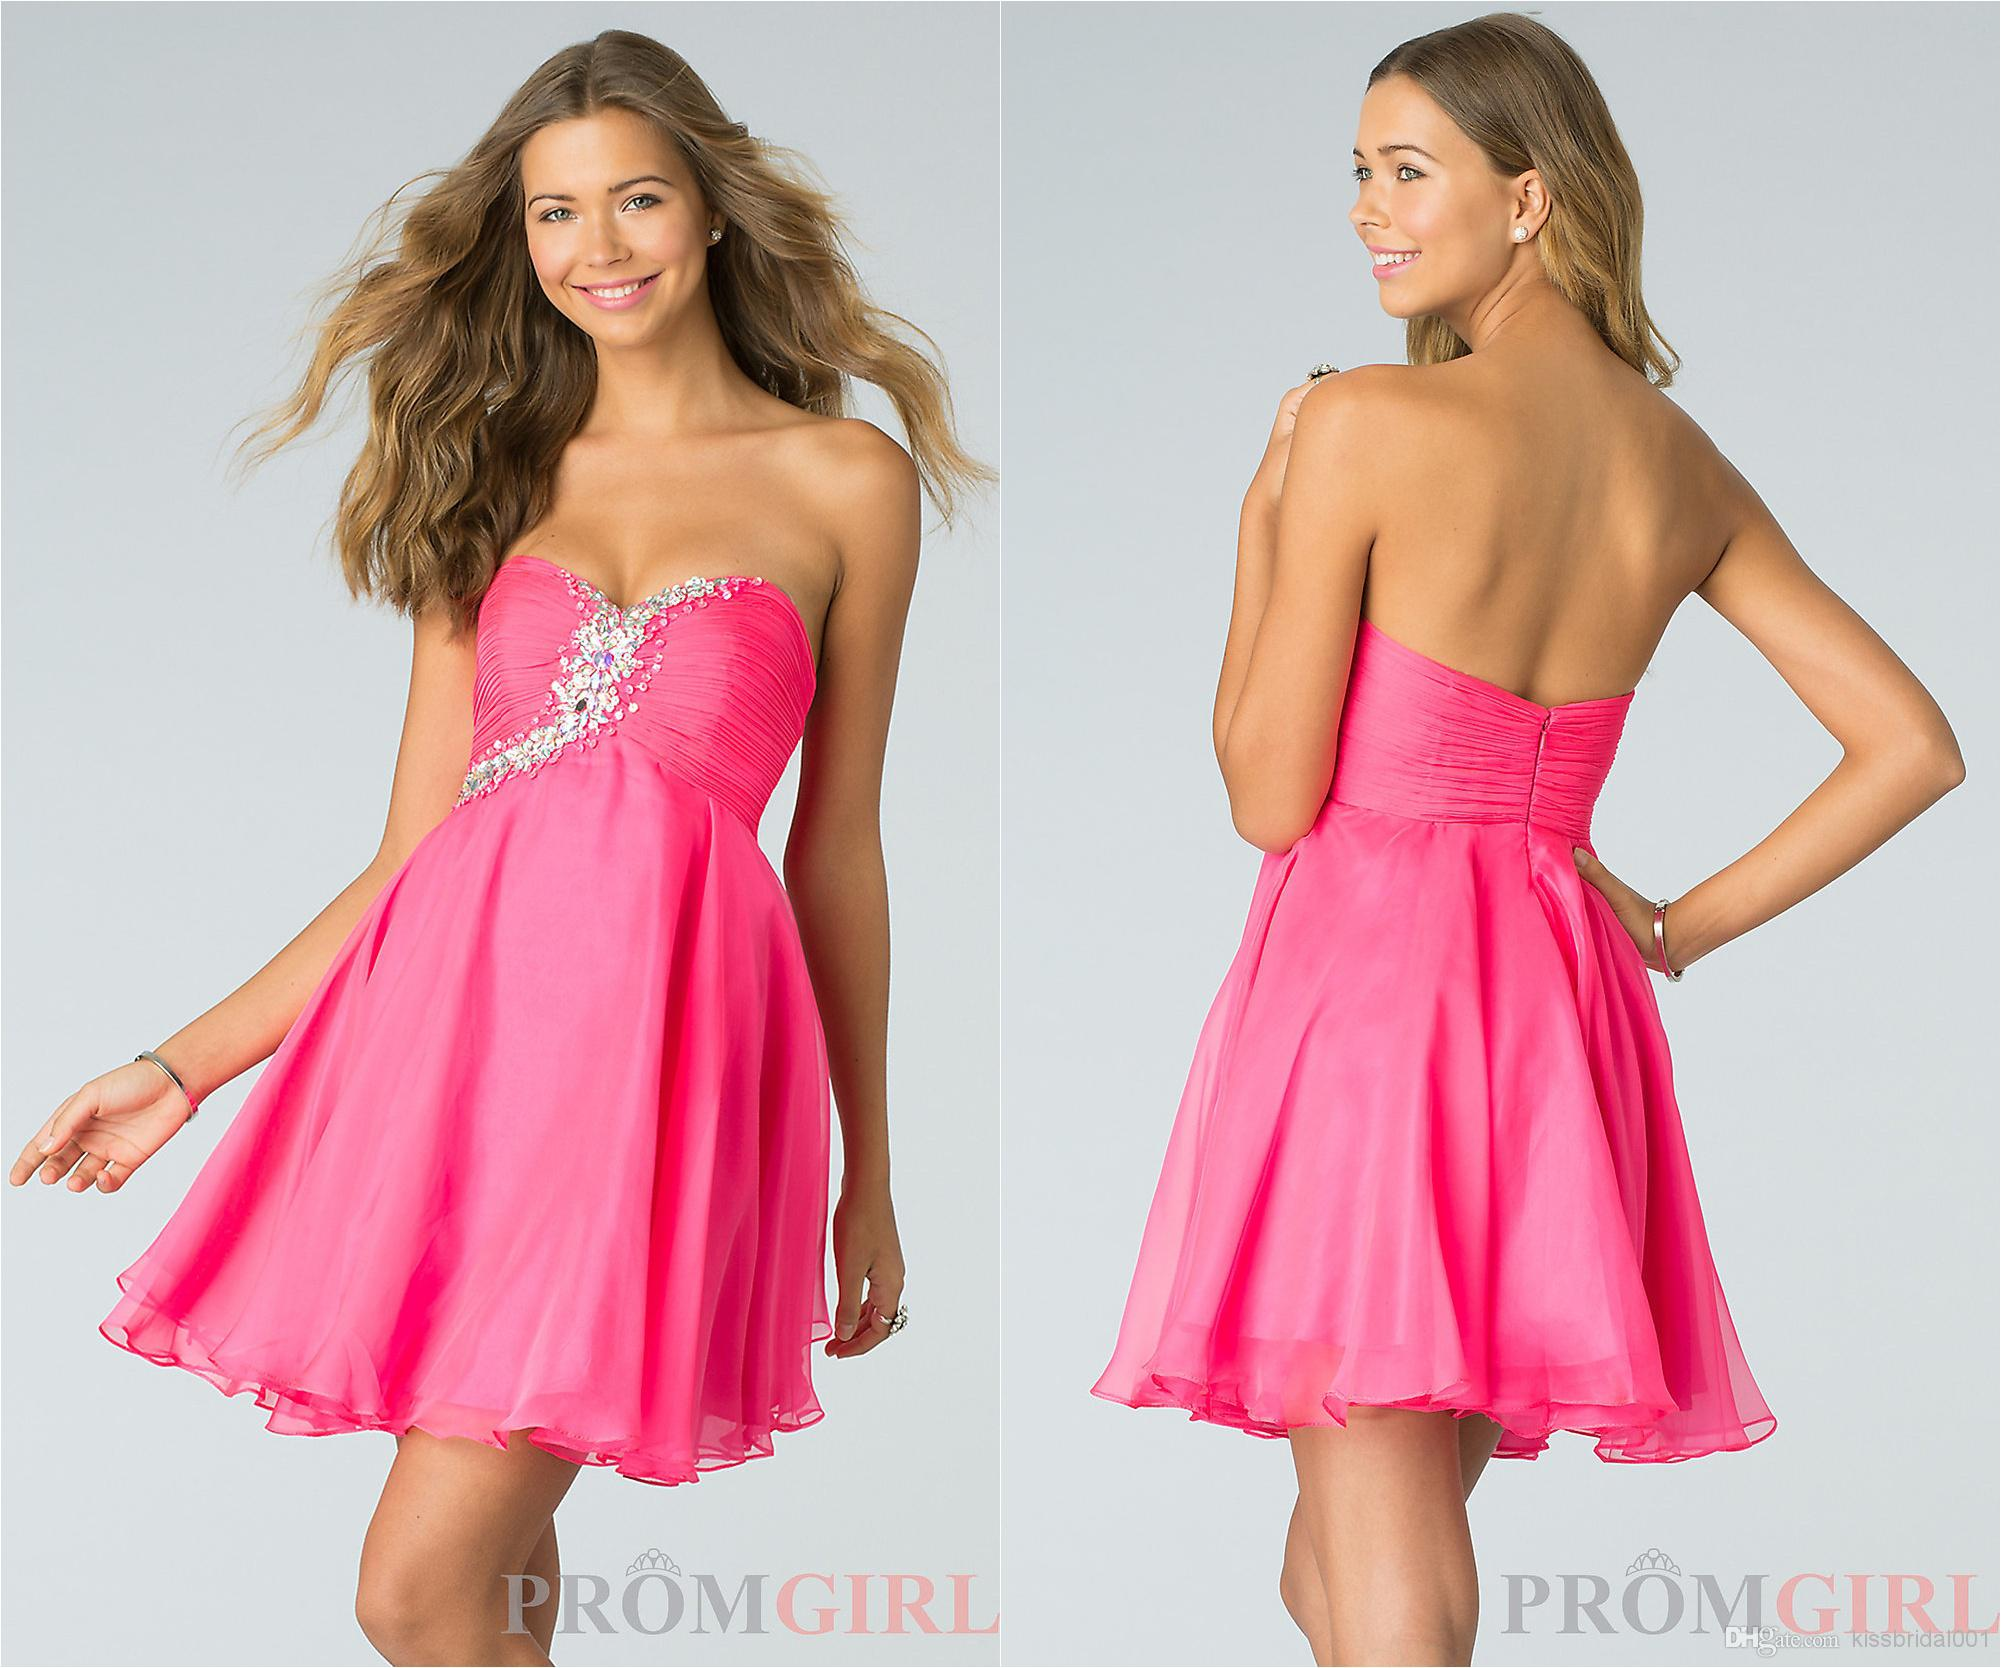 Wholesale 2014 Homecoming Dresses - Buy Cheap In Stock 2014 Homecoming Dresses Beads Sweetheart Neck Zip Back Short Length Short Prom Dresses Pink Bridesmaid Dresses Under $100, $64.66 | DHgate